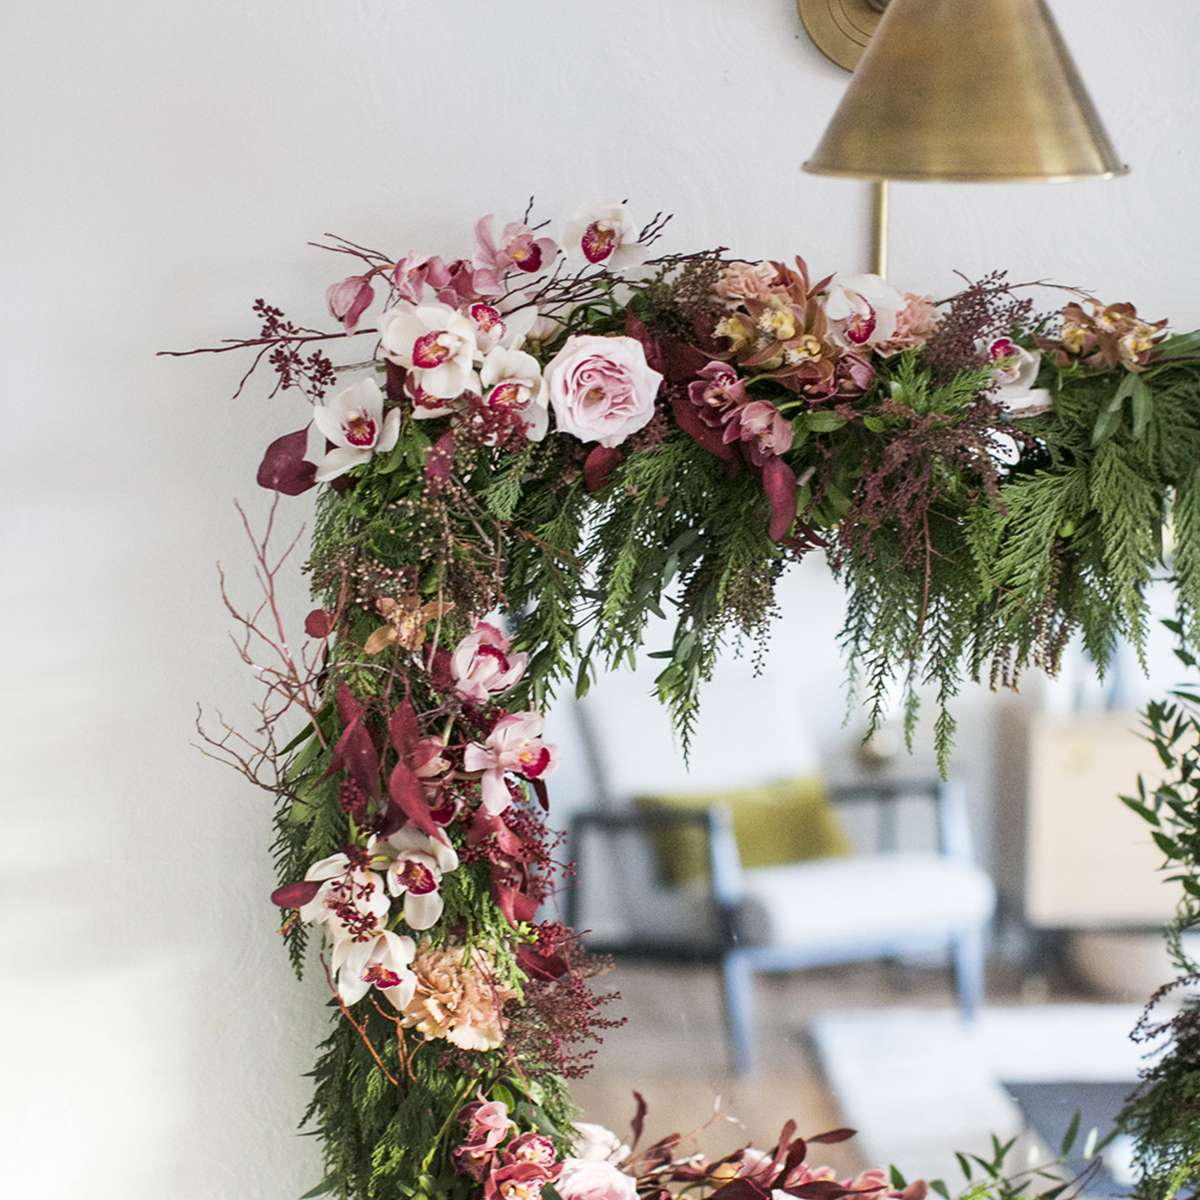 Floral Tutorial: A Unique Winter Garland With Orchids & Greens